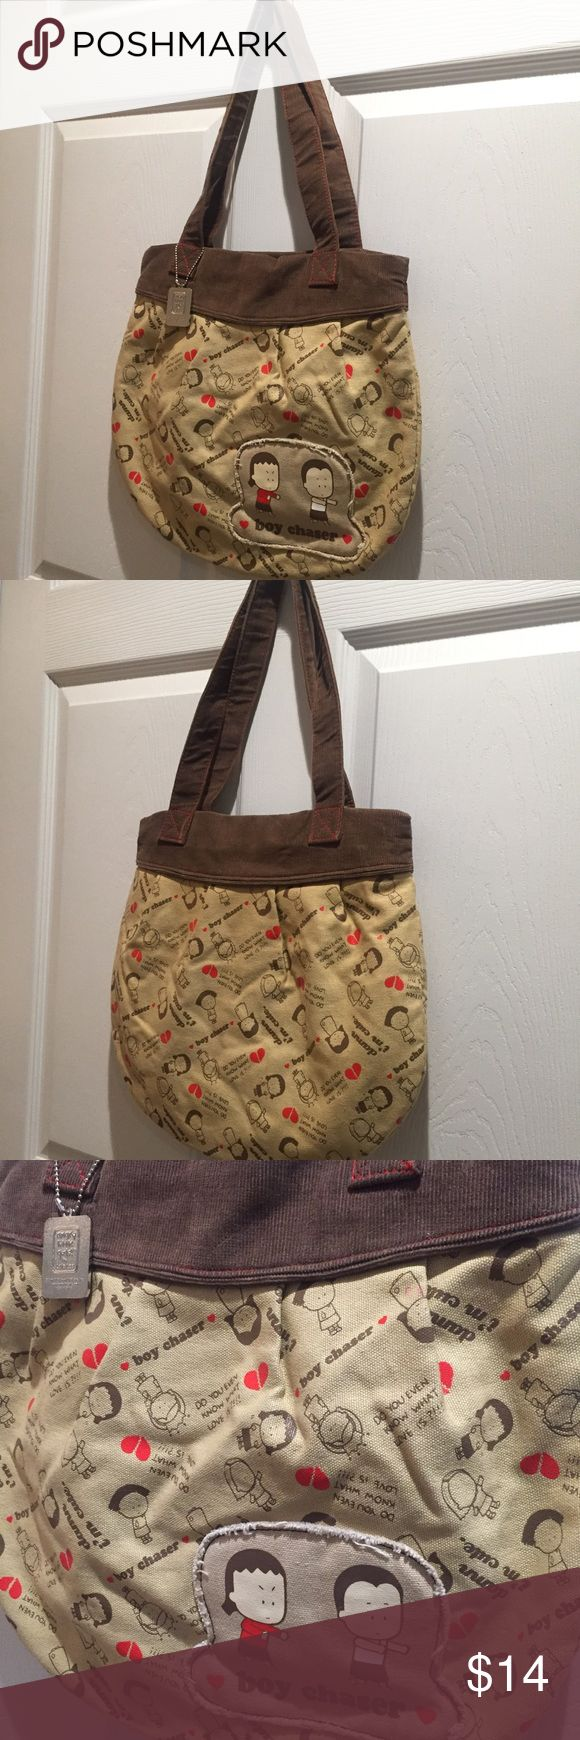 Angry Little Girls by Lela Lee Bag Gently used, excellent condition, two inside pockets. Lela Lee Bags Shoulder Bags